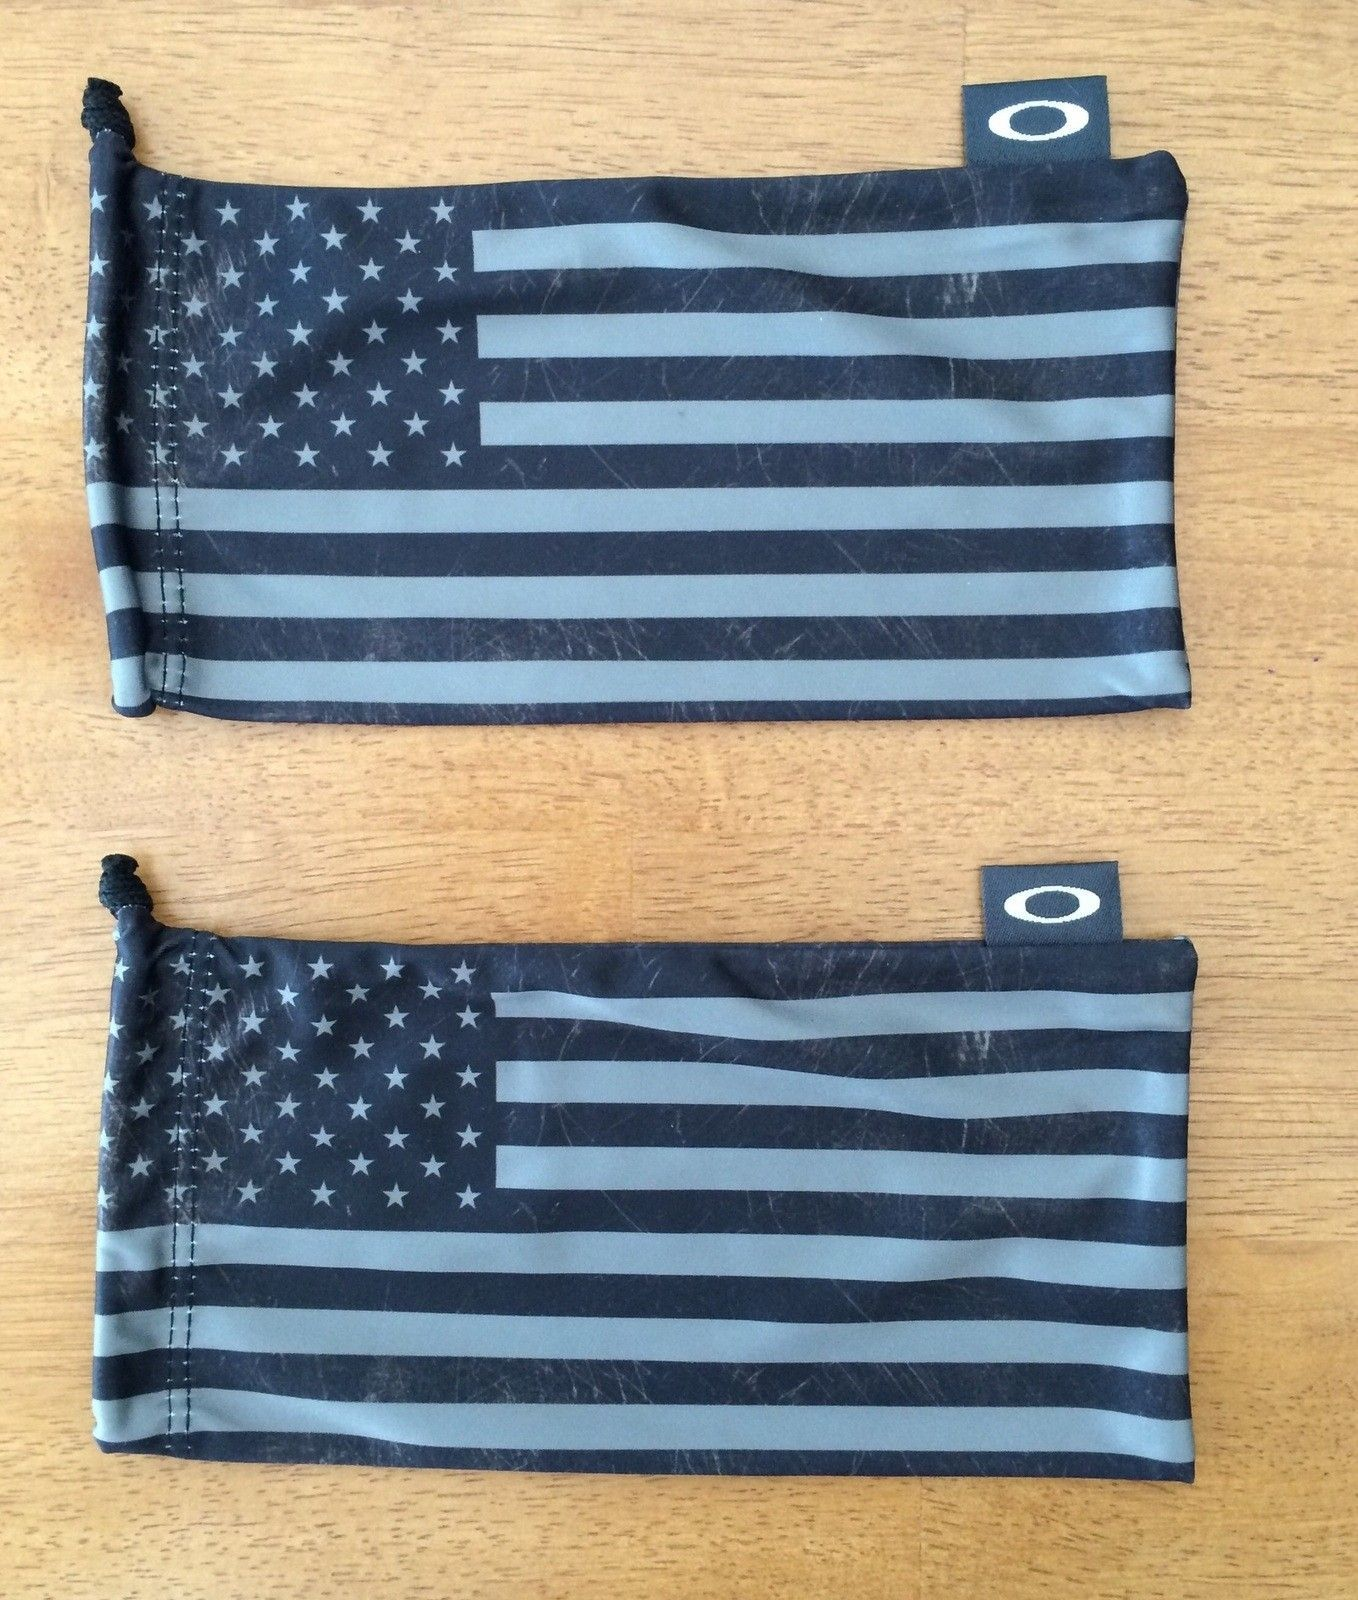 Subdue Flag Mircofiber bag (SOLD) - image.jpg